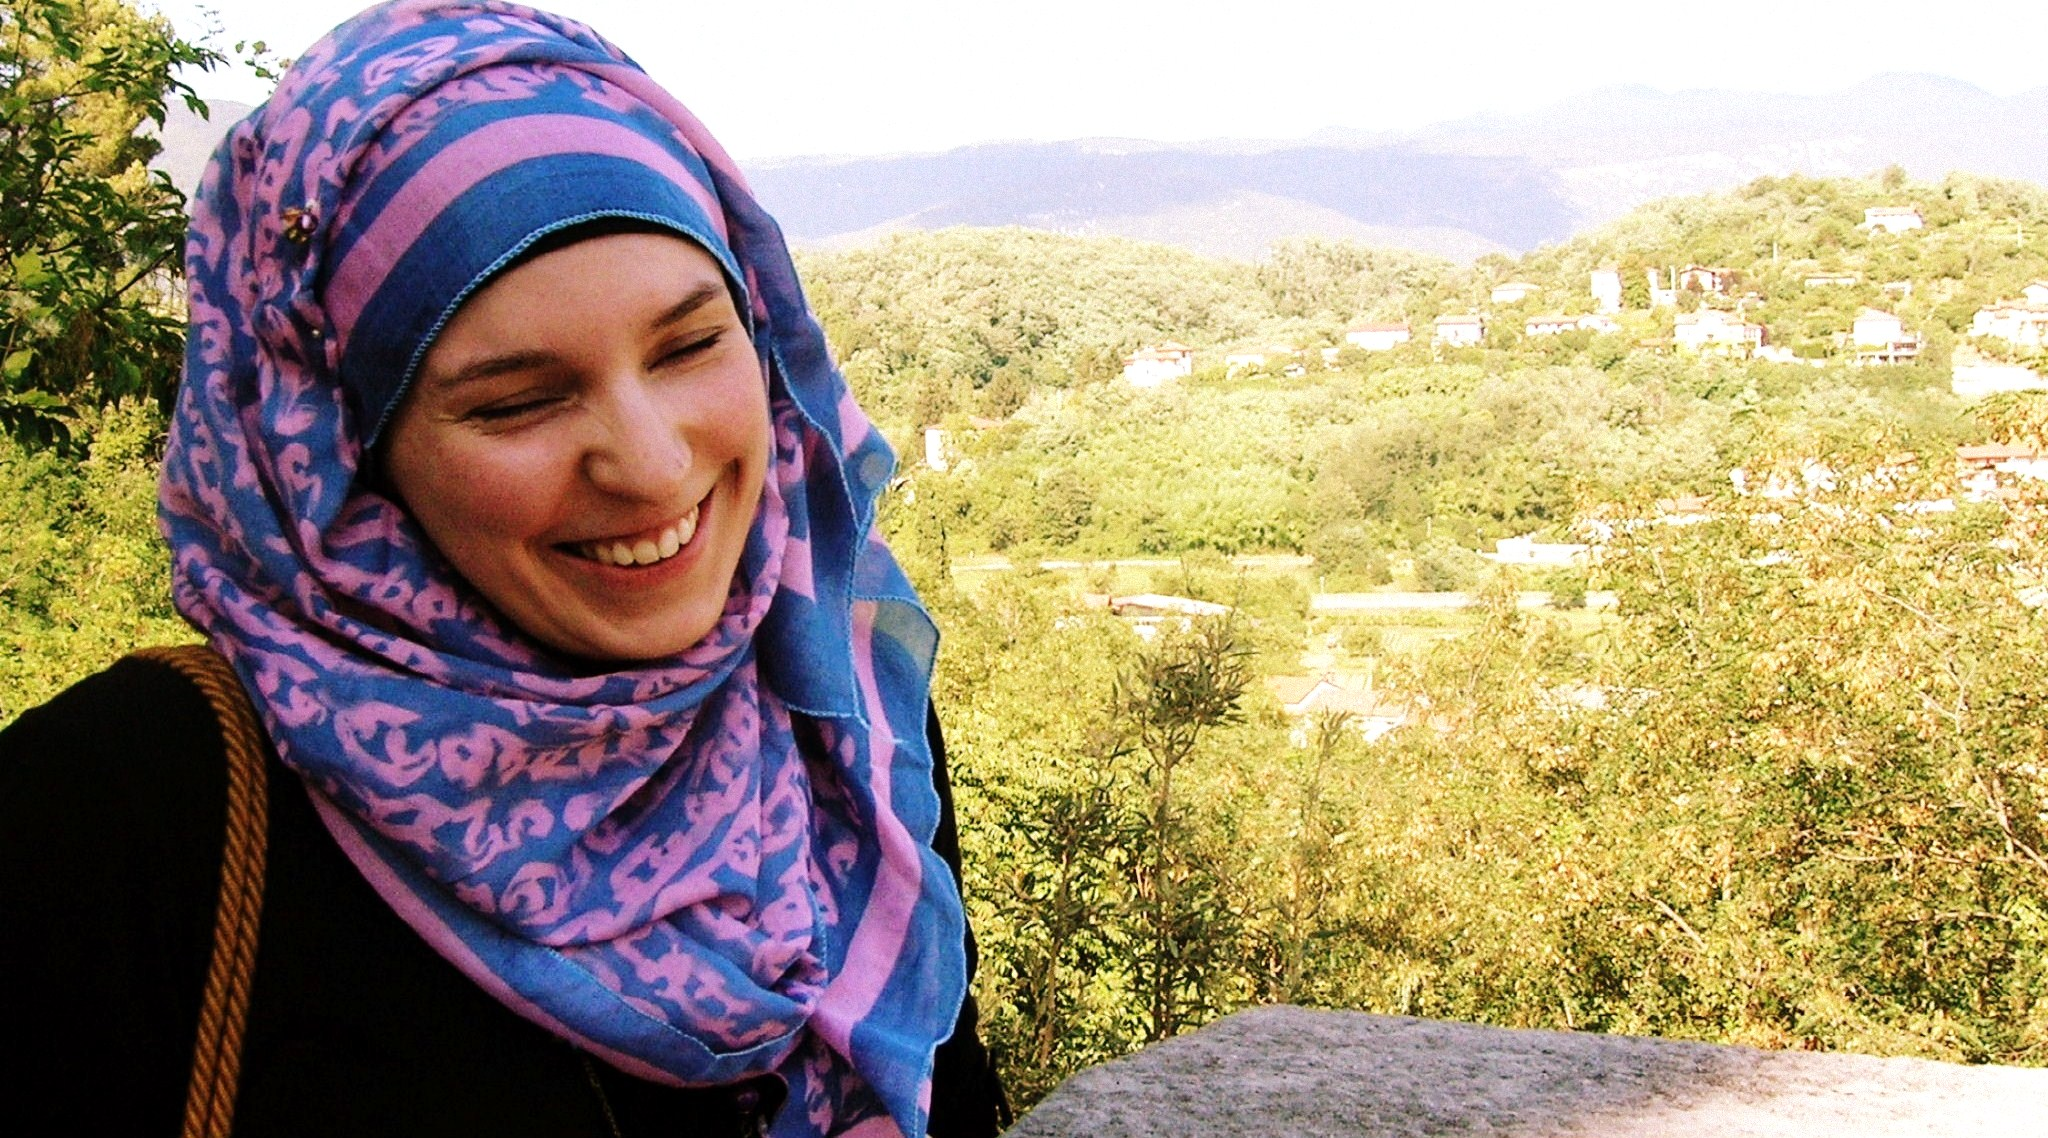 muslim single women in charleston afb Meet single women in charleston afb sc online & chat in the forums dhu is a 100% free dating site to find single women in charleston afb.